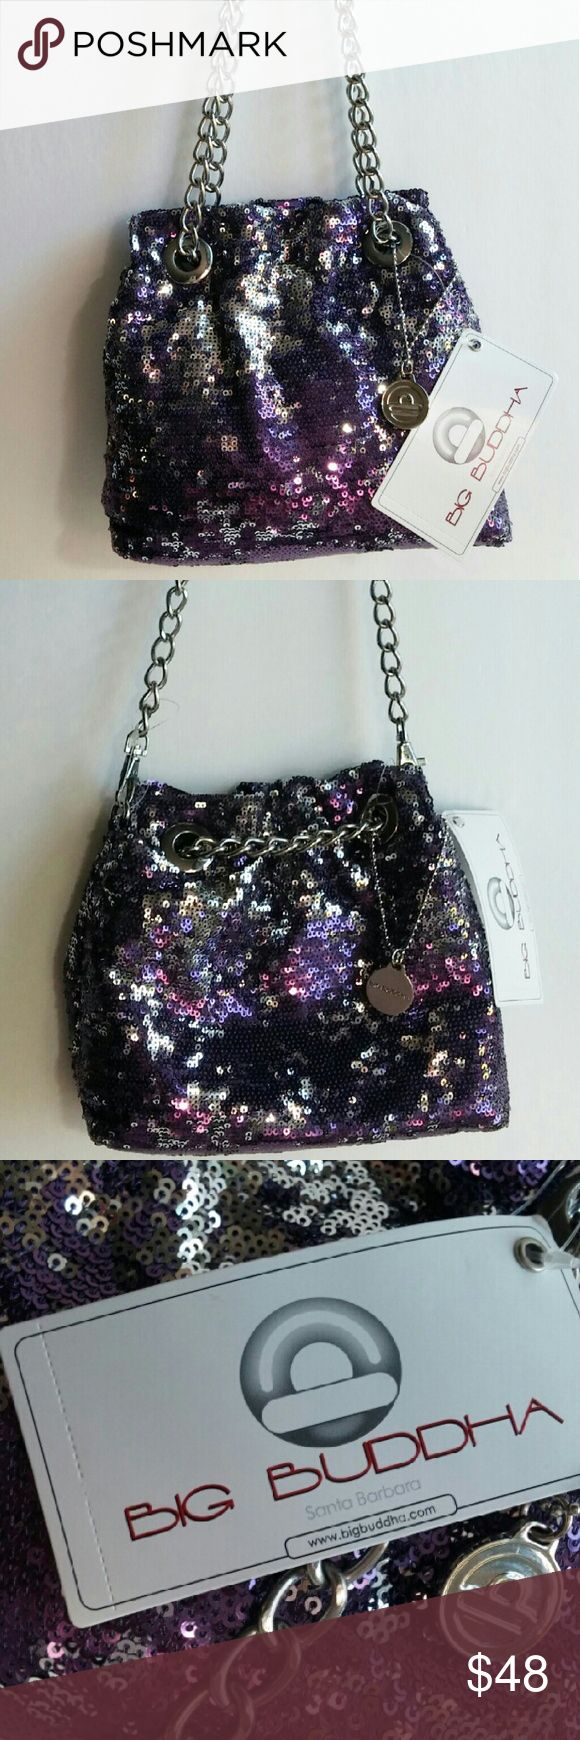 """Big Buddha Purple Sequin Convertible Crossbody Bag This brand new Big Buddha Purple & Sequined Crossbody bag has a detachable chain for a 12 inch strap drop, or pull the fixed chain all the way to one side for a 20 inch strap drop. The inside lining is purple silky fabric. It has a center zip divider pocket, a slip pocket, and the big Buddha logo patch. A logo hanging medallion adorns this little bag. It measures 7"""" Hx 9"""" L x 3.5"""" D. Tag says pink, but the eyes say this bag is indeed purple…"""